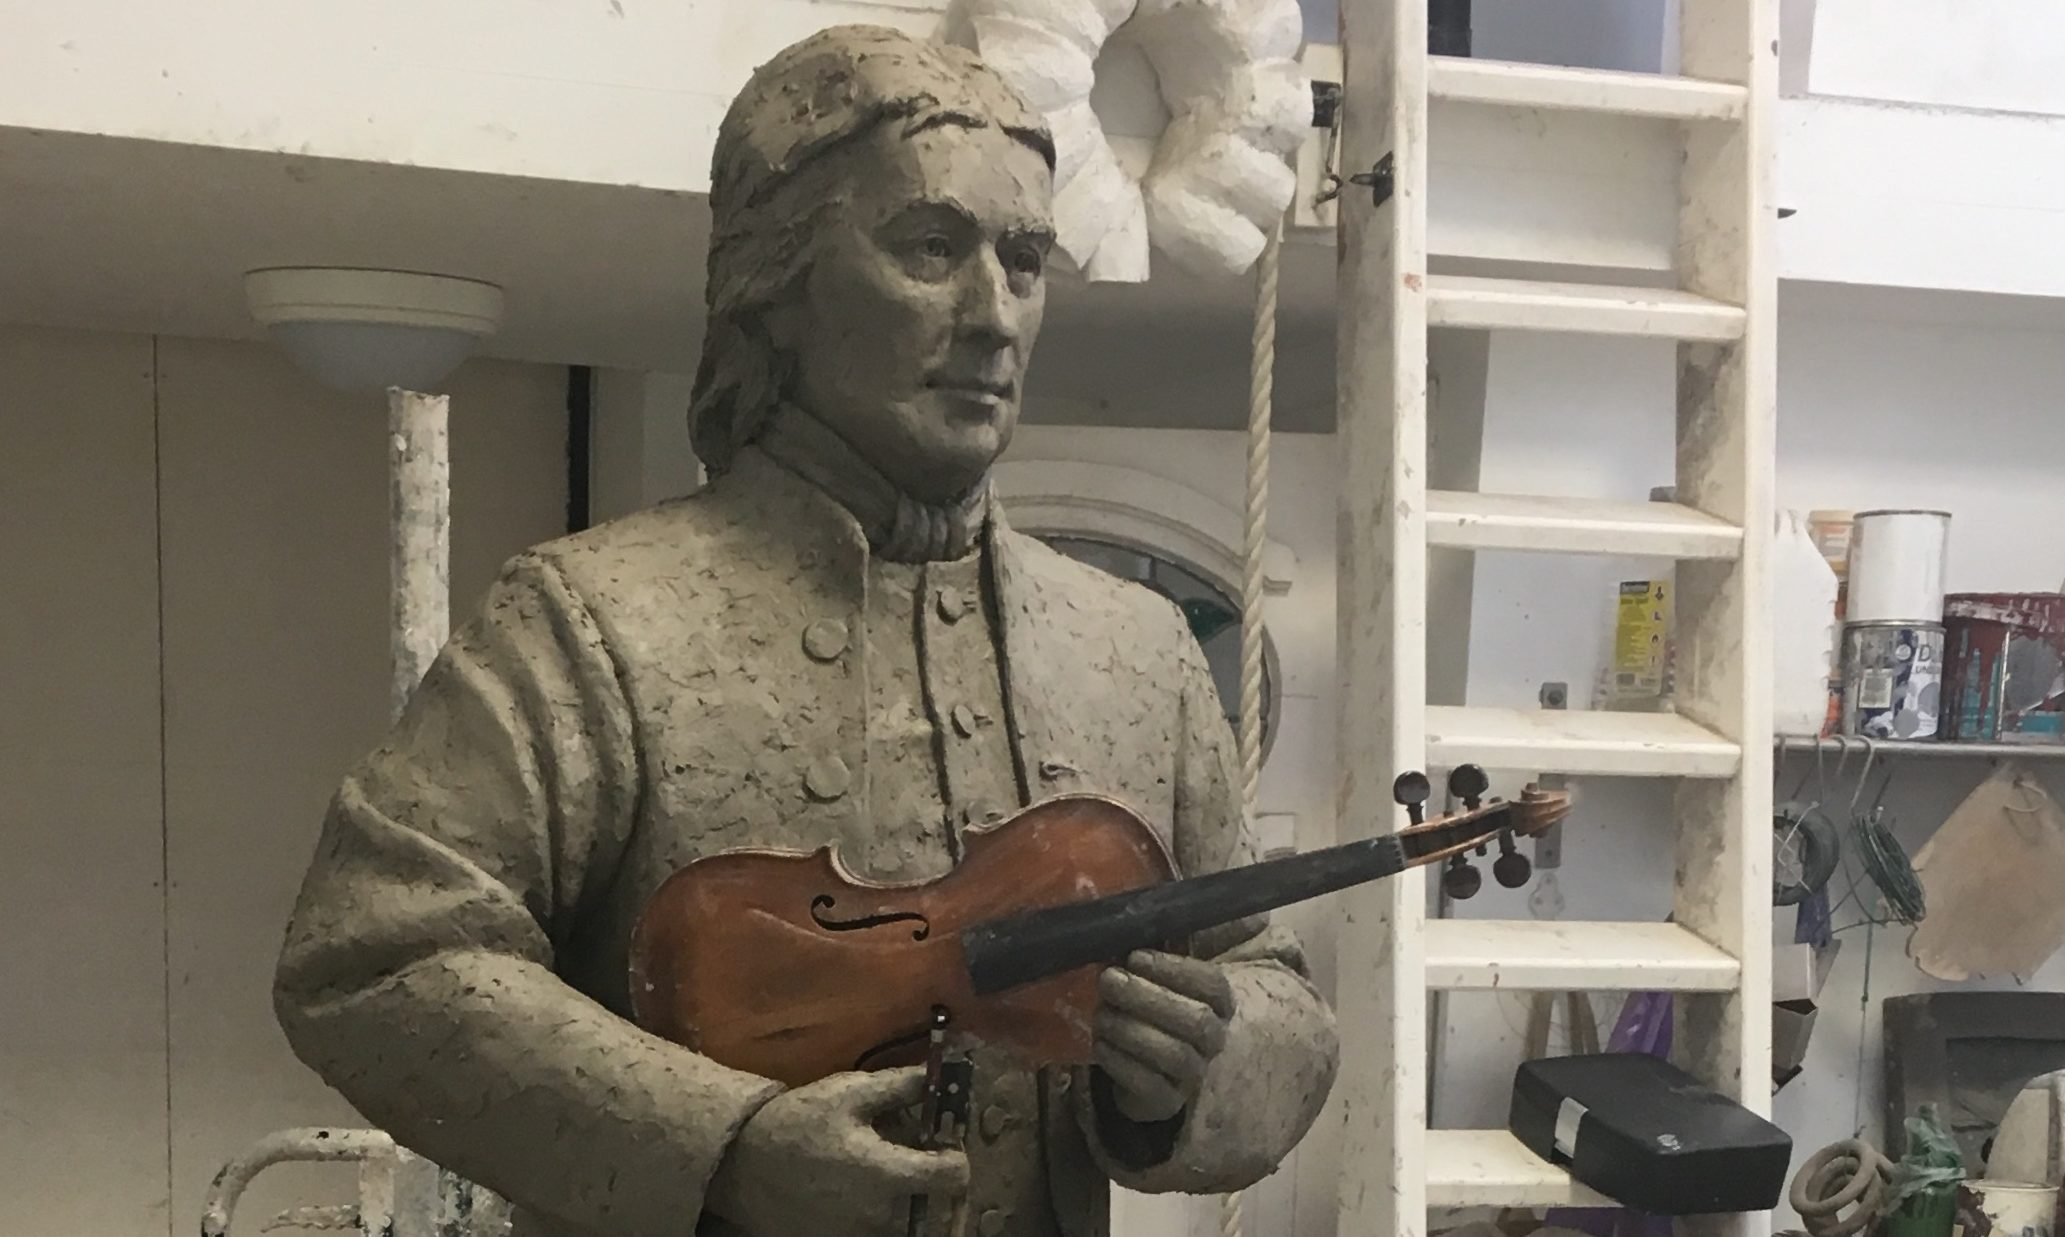 A bronze statue of Strathbraan fiddler Niel Gow will be unveiled in March.